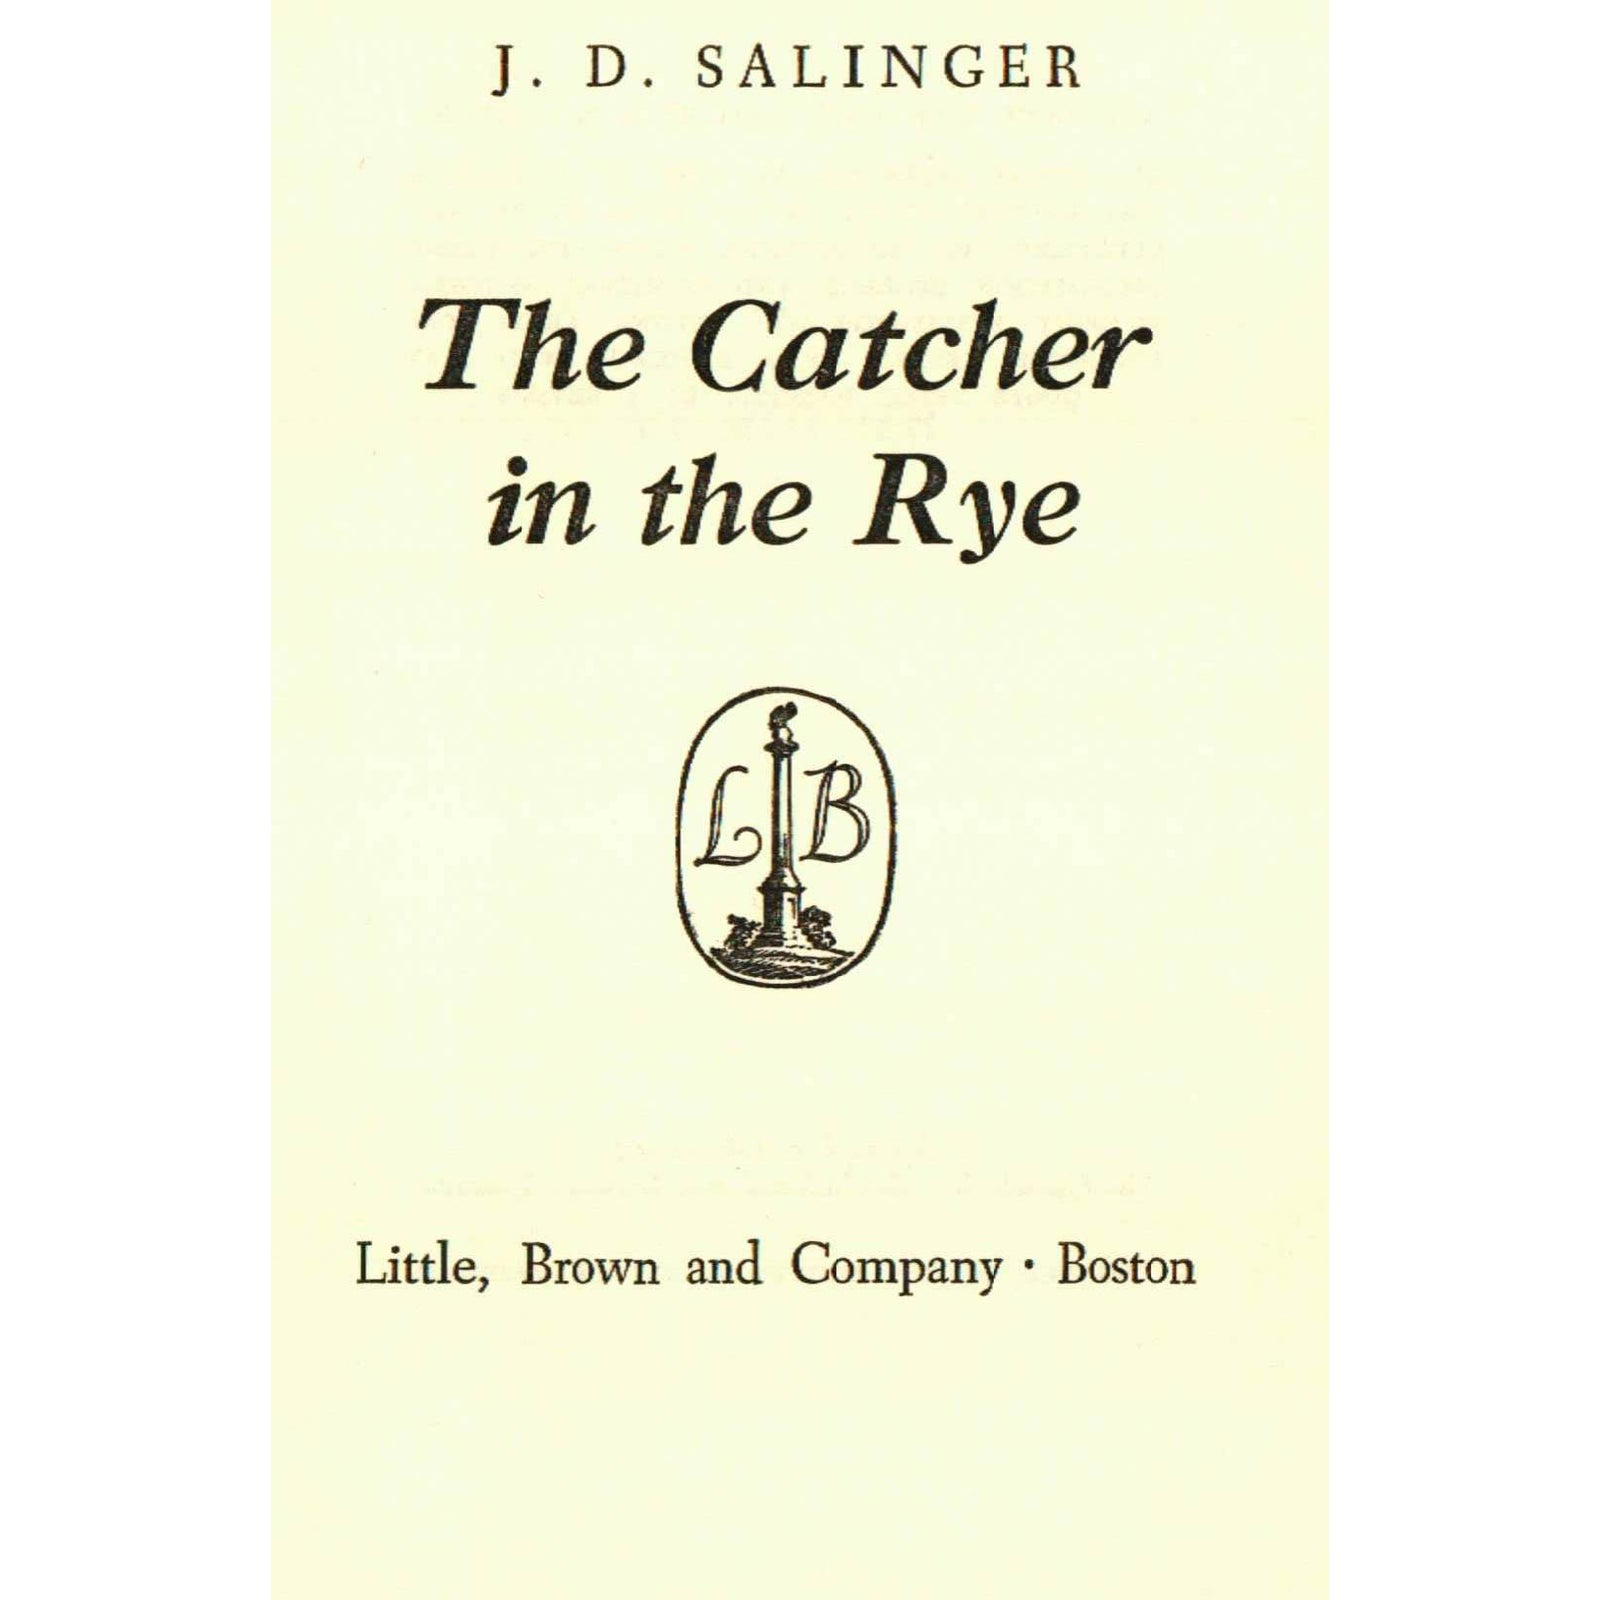 catcher in the rye sibling relationships He says he would like to be the catcher in the rye, standing by the edge of a cliff and keeping children, playing in an adjacent field of rye, from falling off holden's alienation is disenchantment mingled with hope.